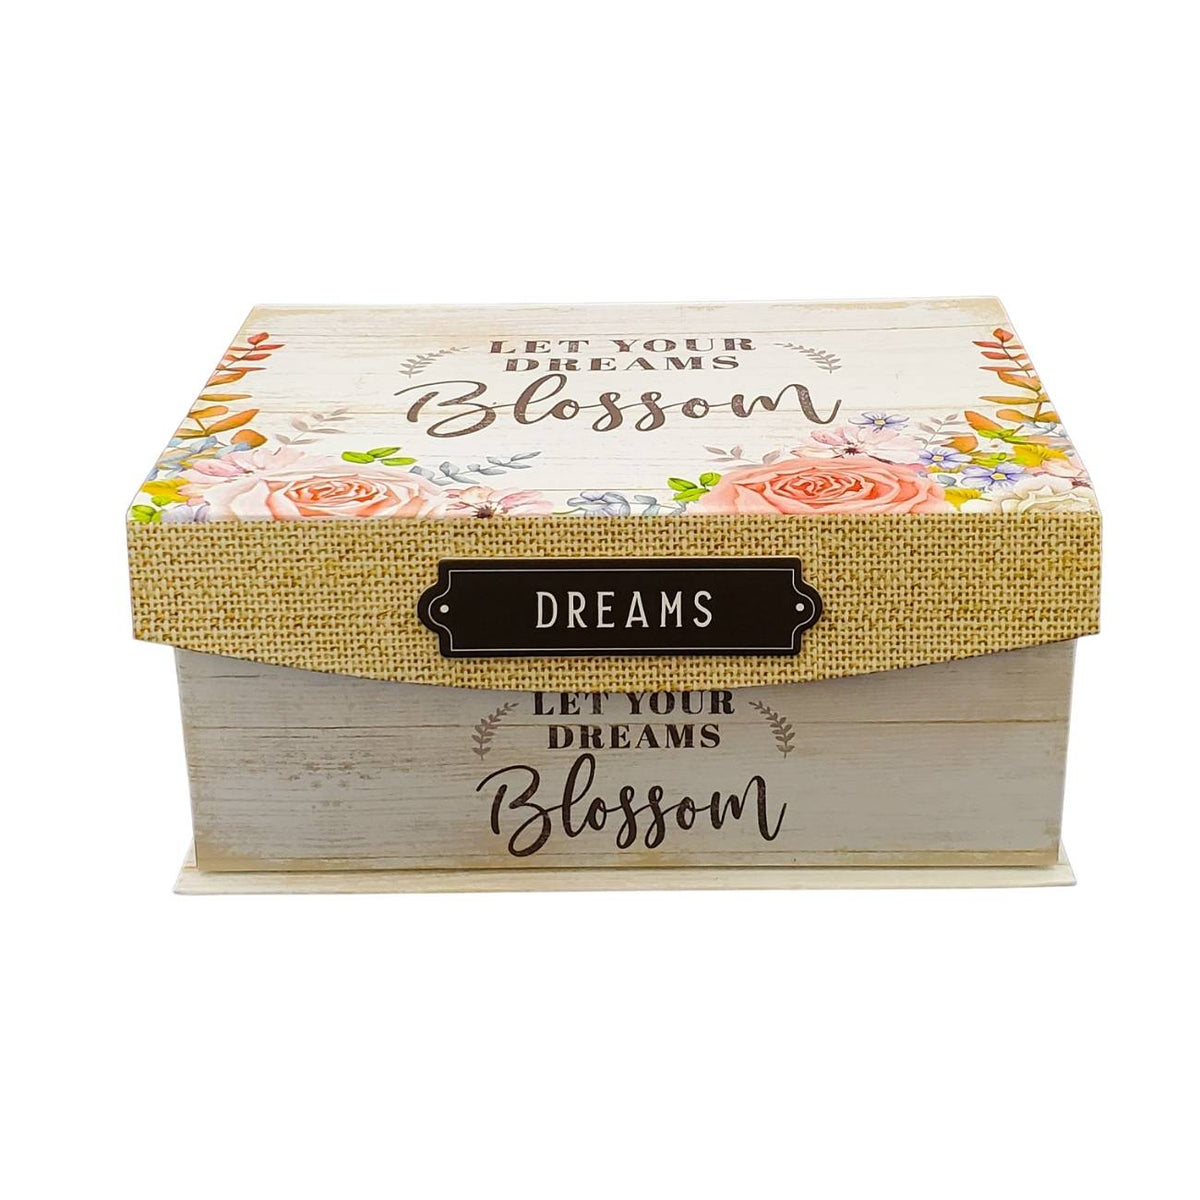 Delightful Gift Box | Filled With Handmade Soaps, Lotion +Body Butter